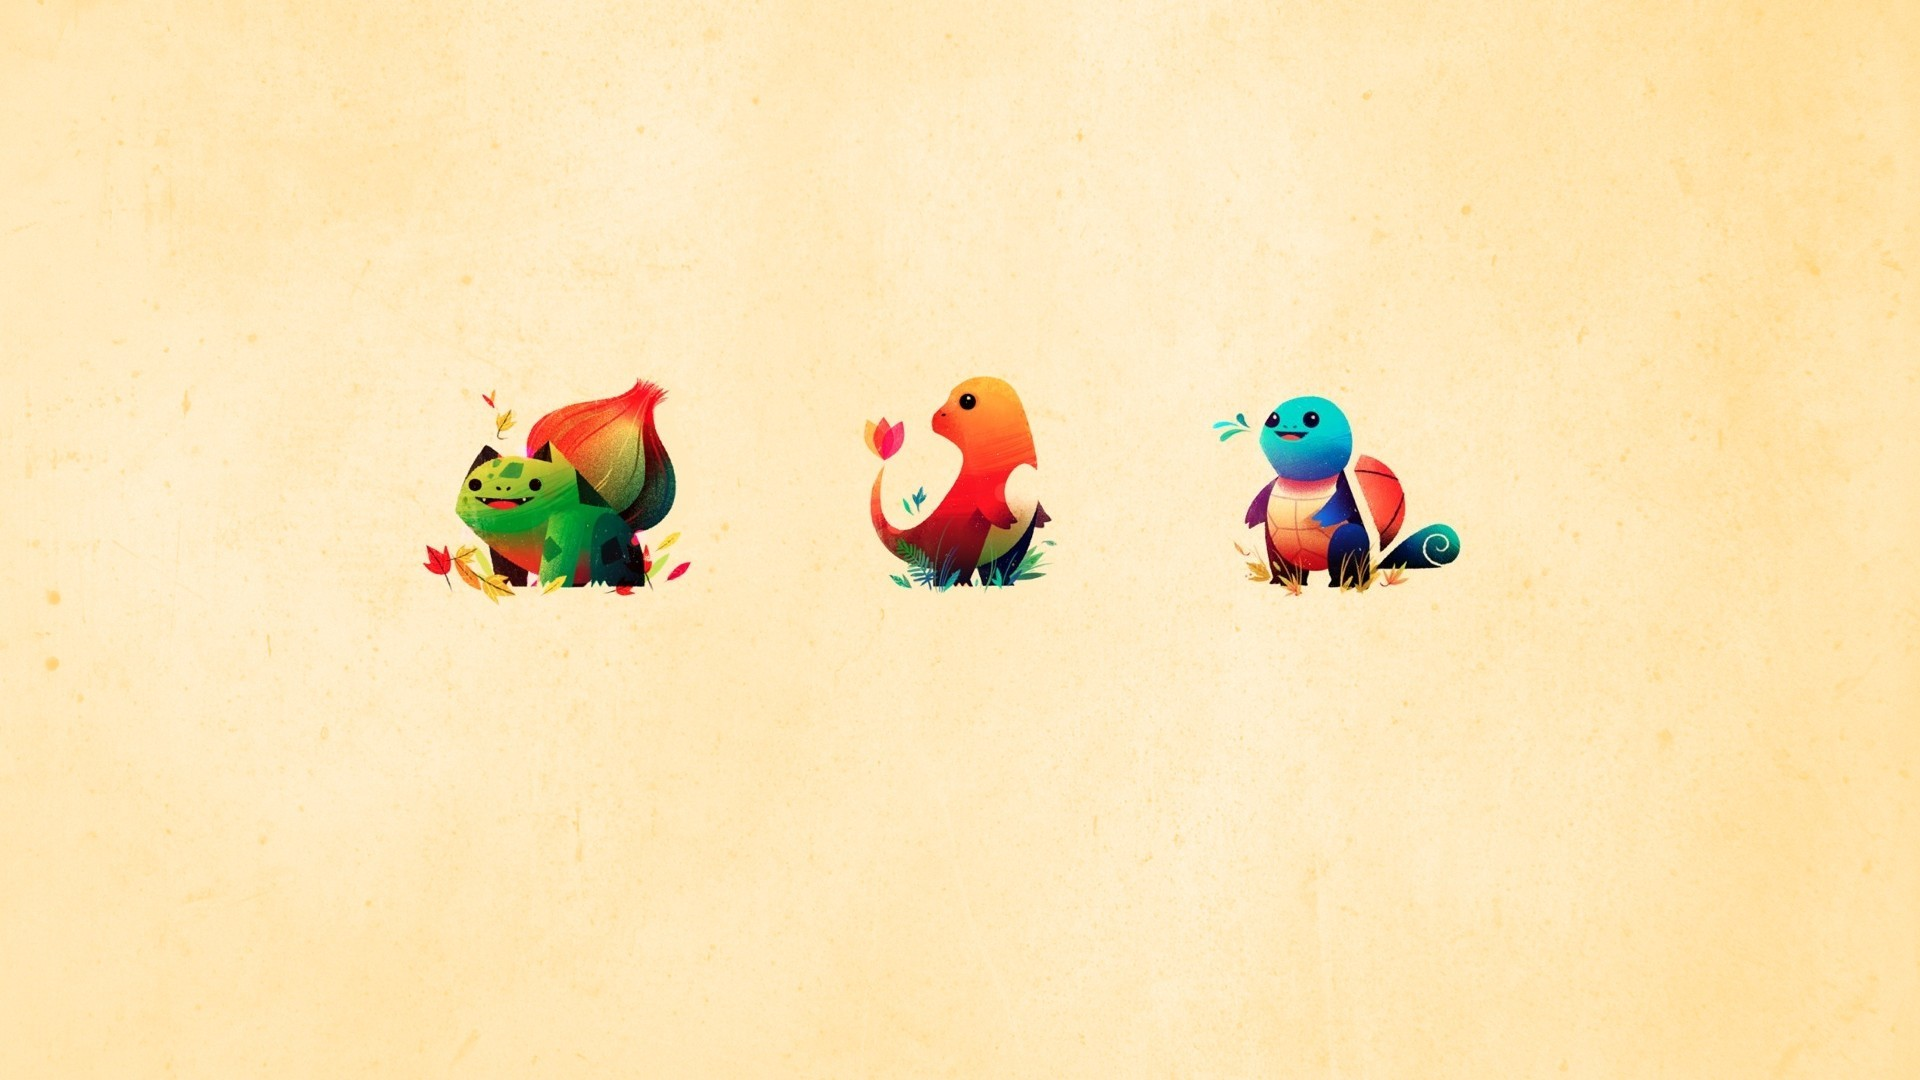 Gravity Falls Wallpaper Iphone 4 Minimalistic Bulbasaur Squirtle Charmander Wallpaper